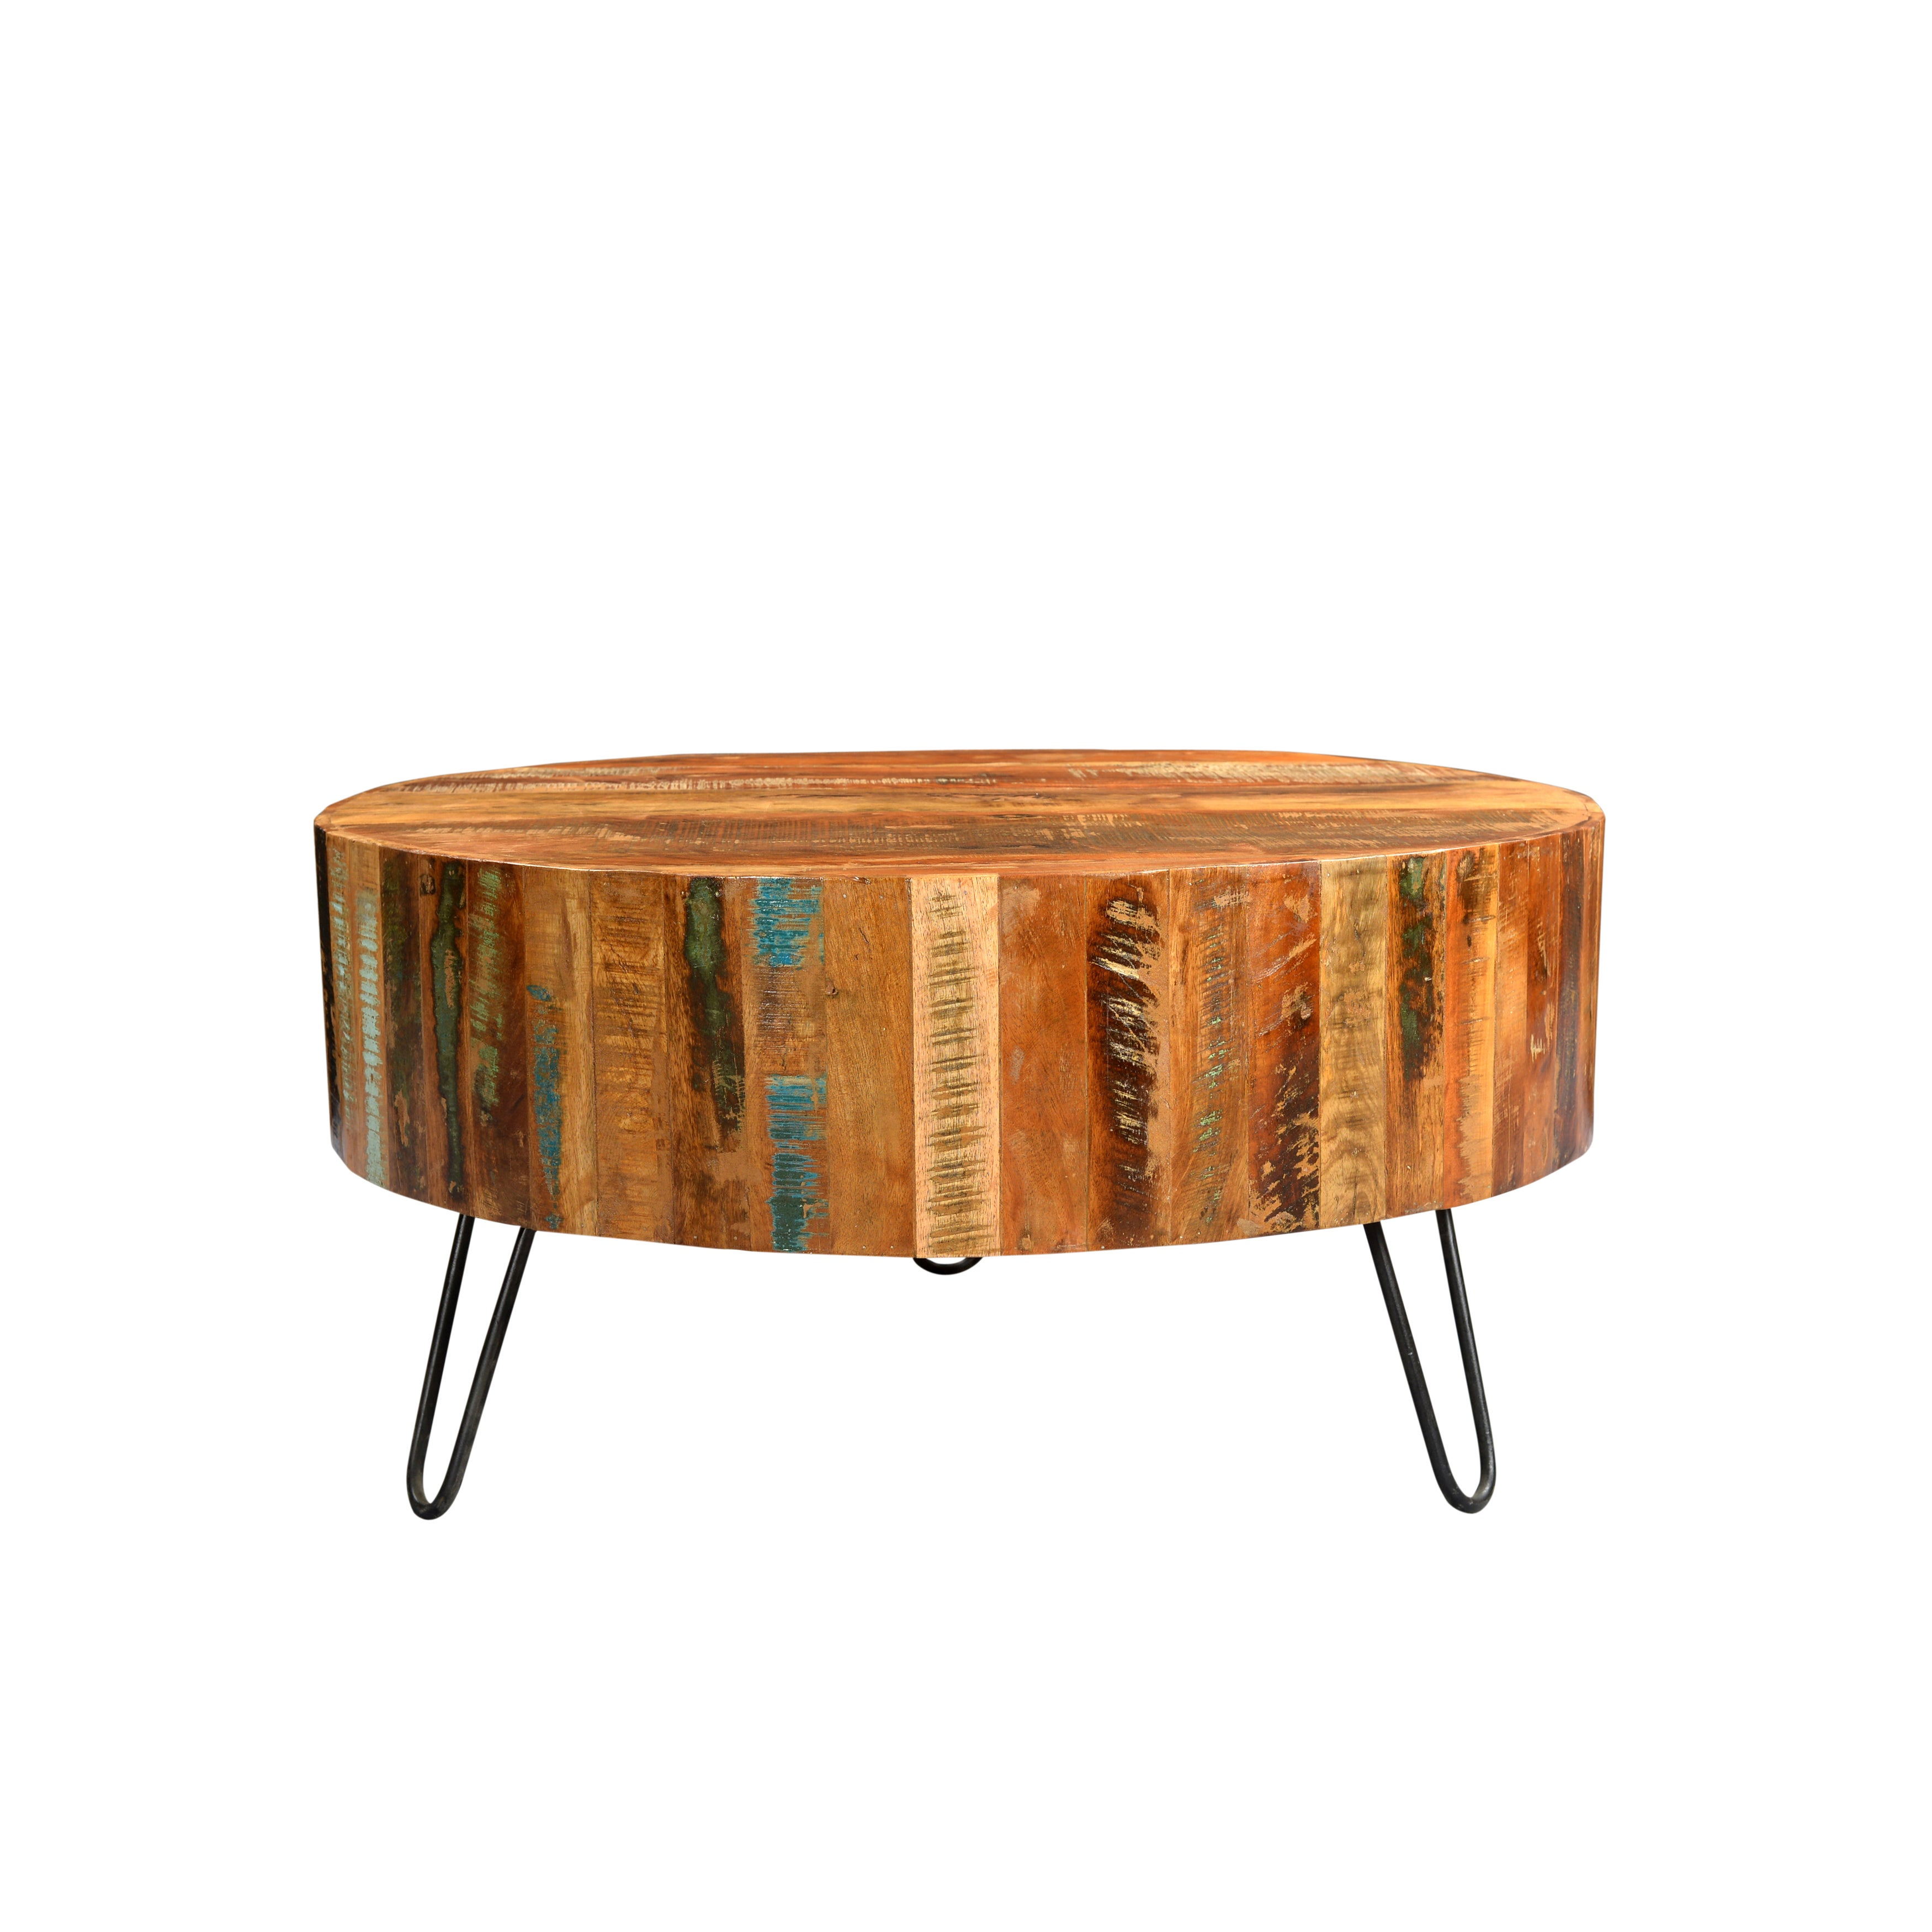 Wanderloot Tulsa Round Reclaimed Wood Hairpin Legs Coffee Table - Free  Shipping Today - Overstock.com - 18726319